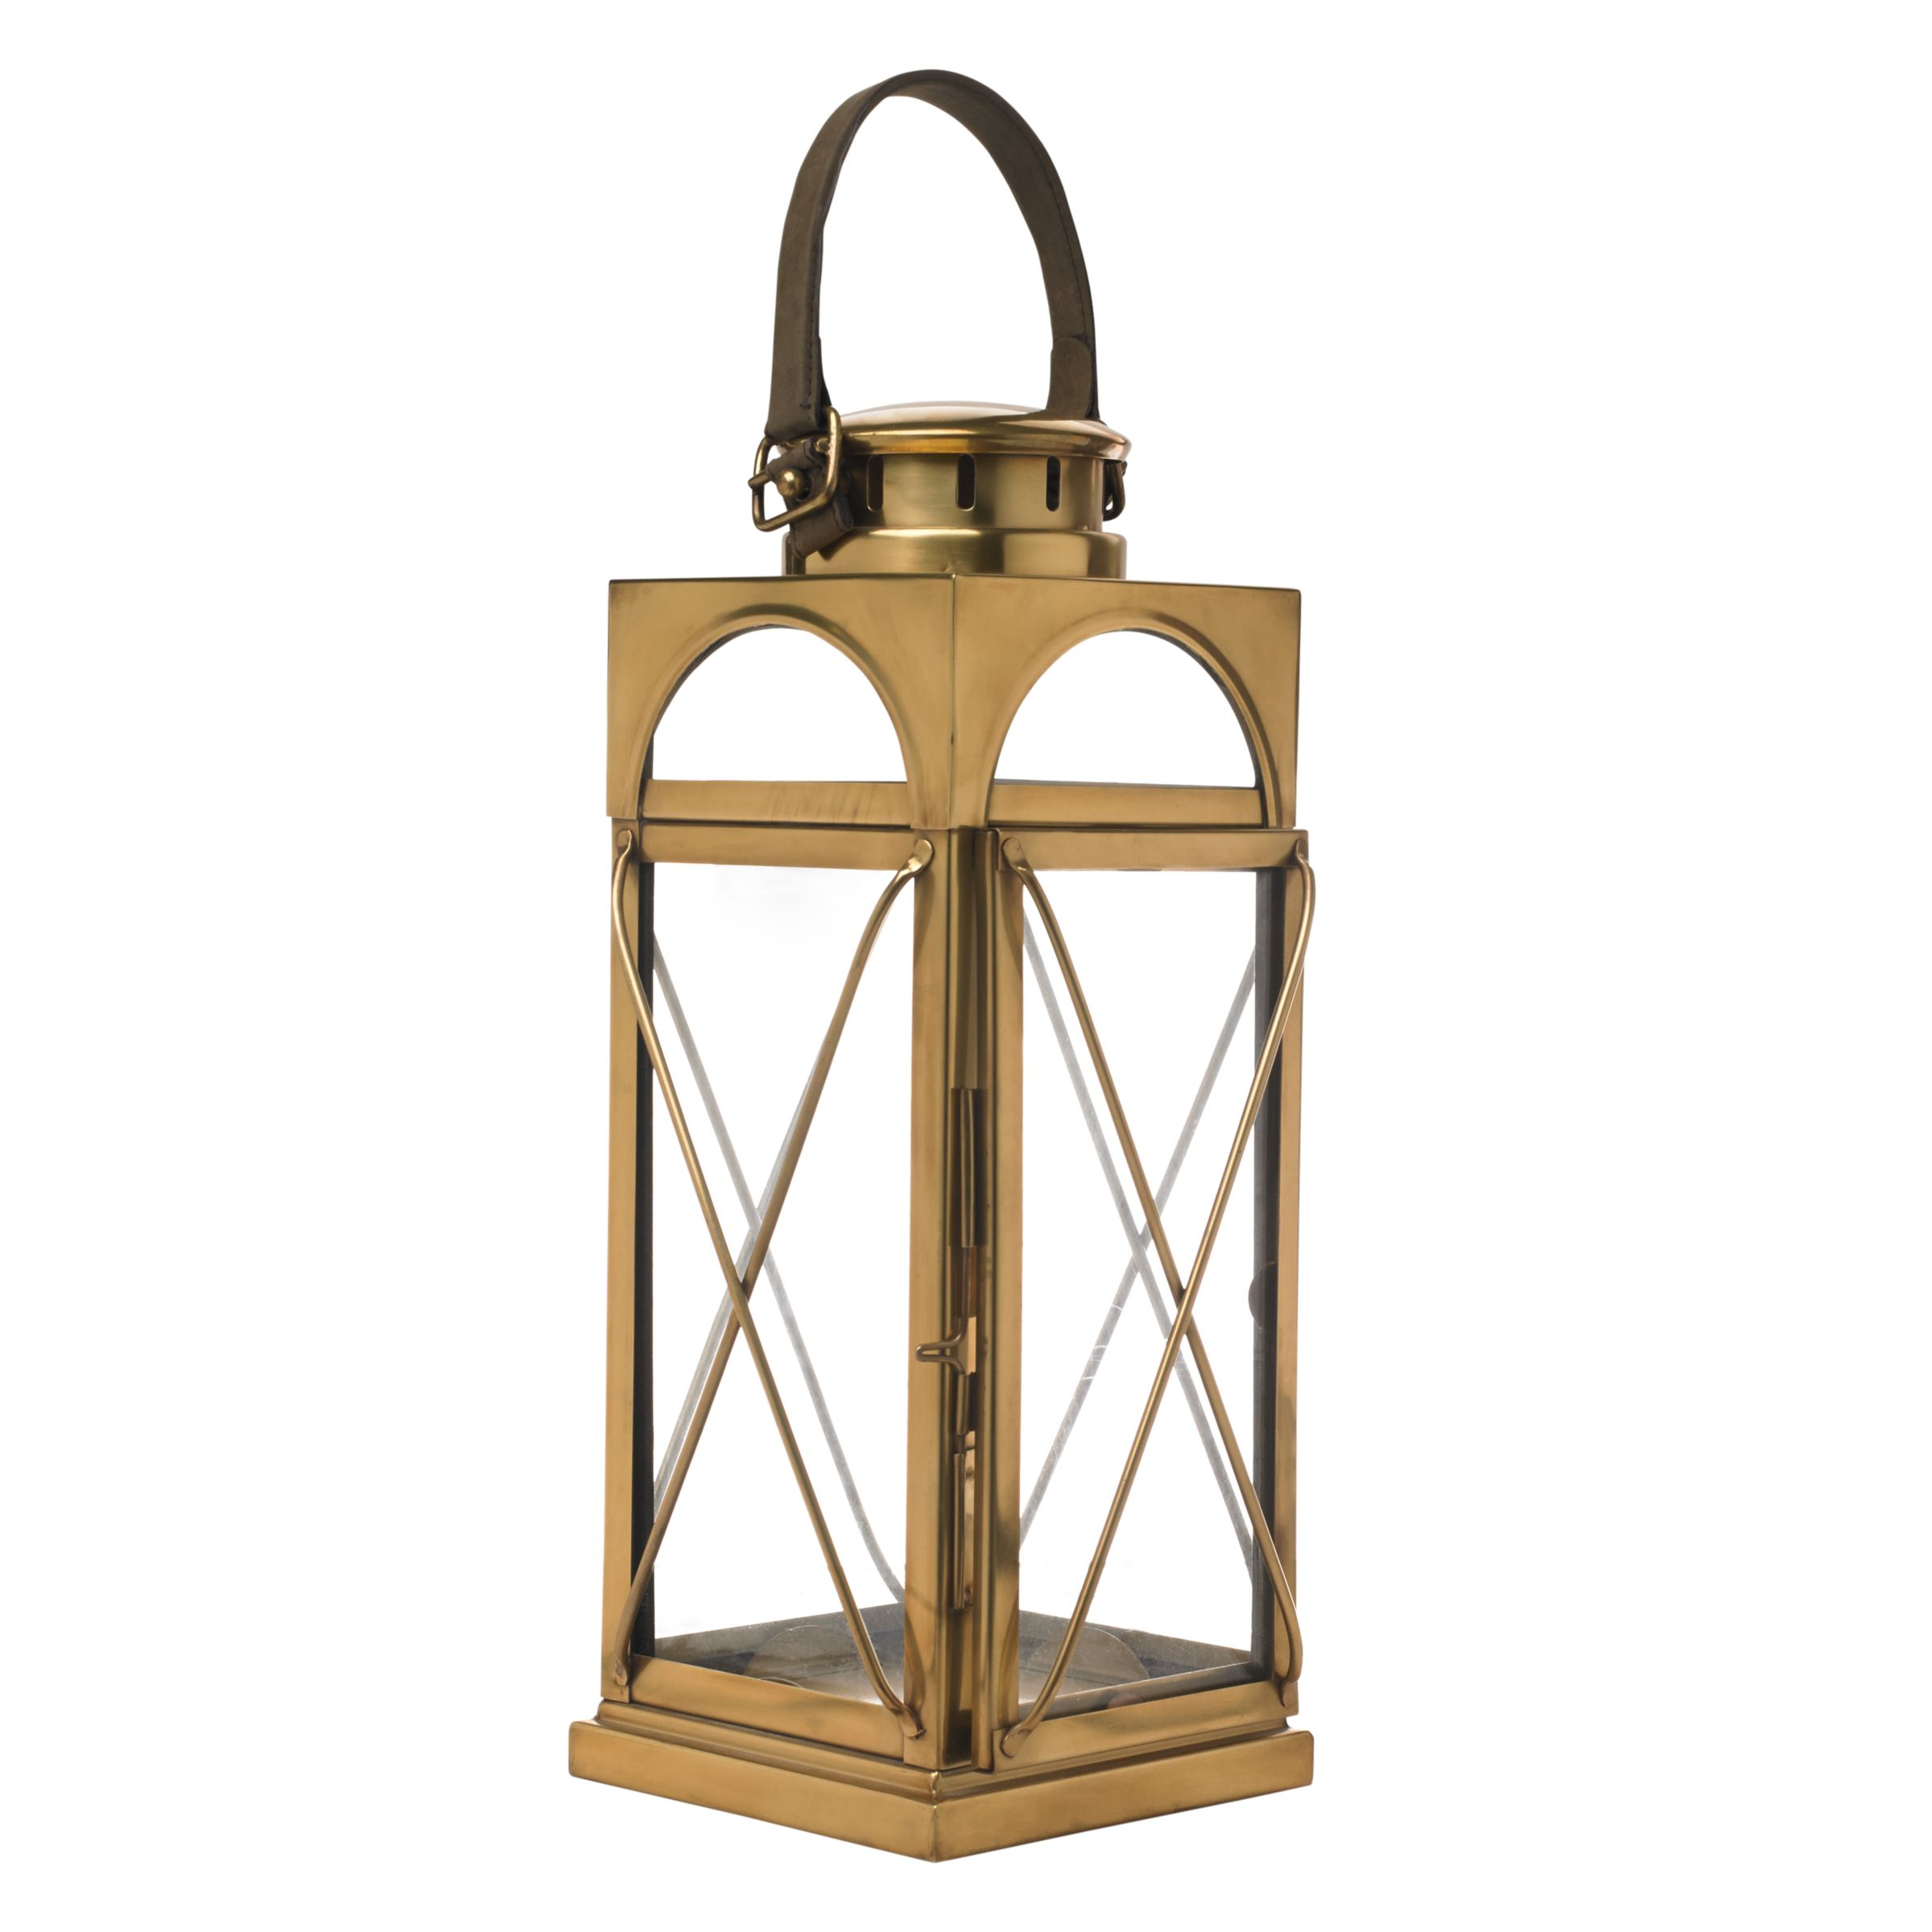 Libra Antique Brass Lantern, Gold, Medium